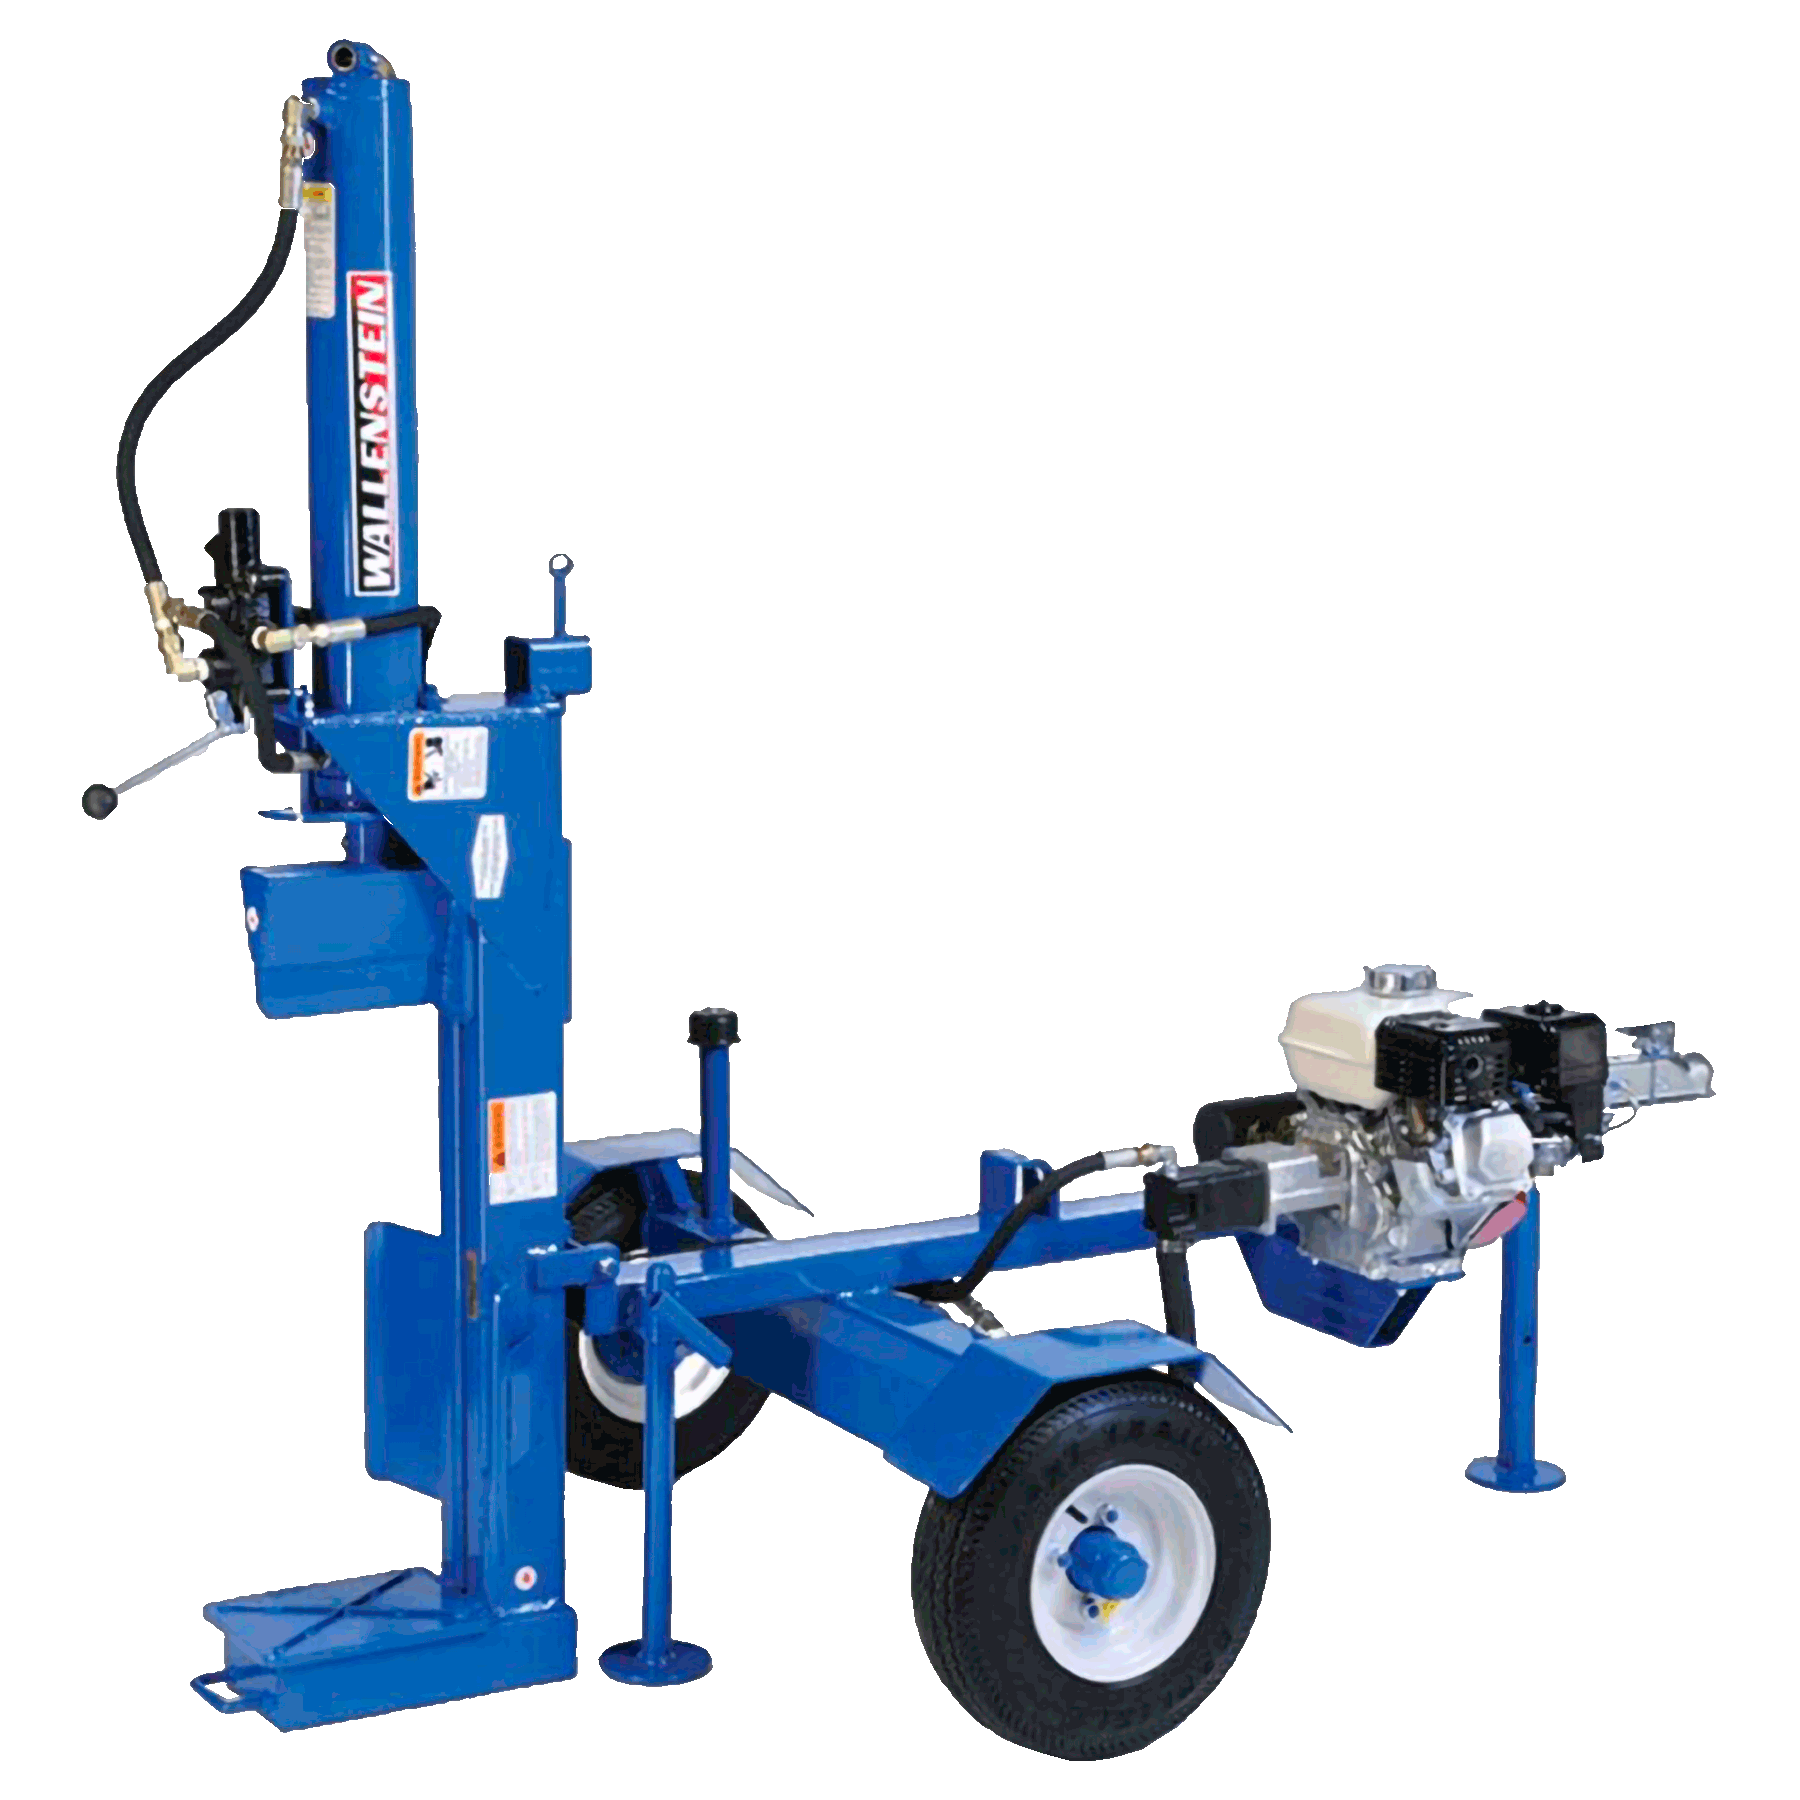 Wood splitter 24in gas